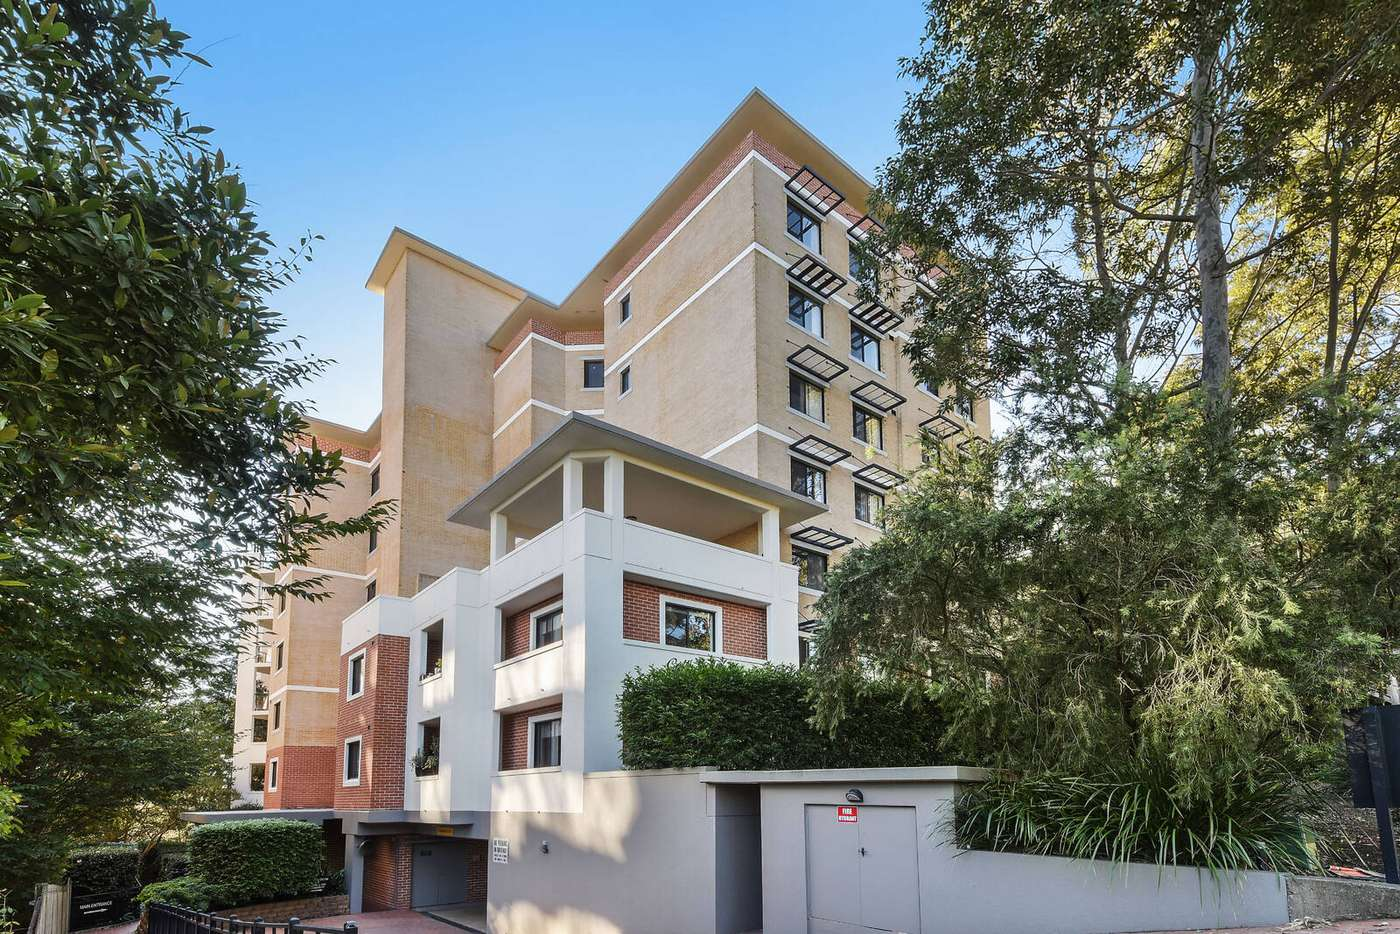 Main view of Homely apartment listing, 20/6-8 College Crescent, Hornsby NSW 2077